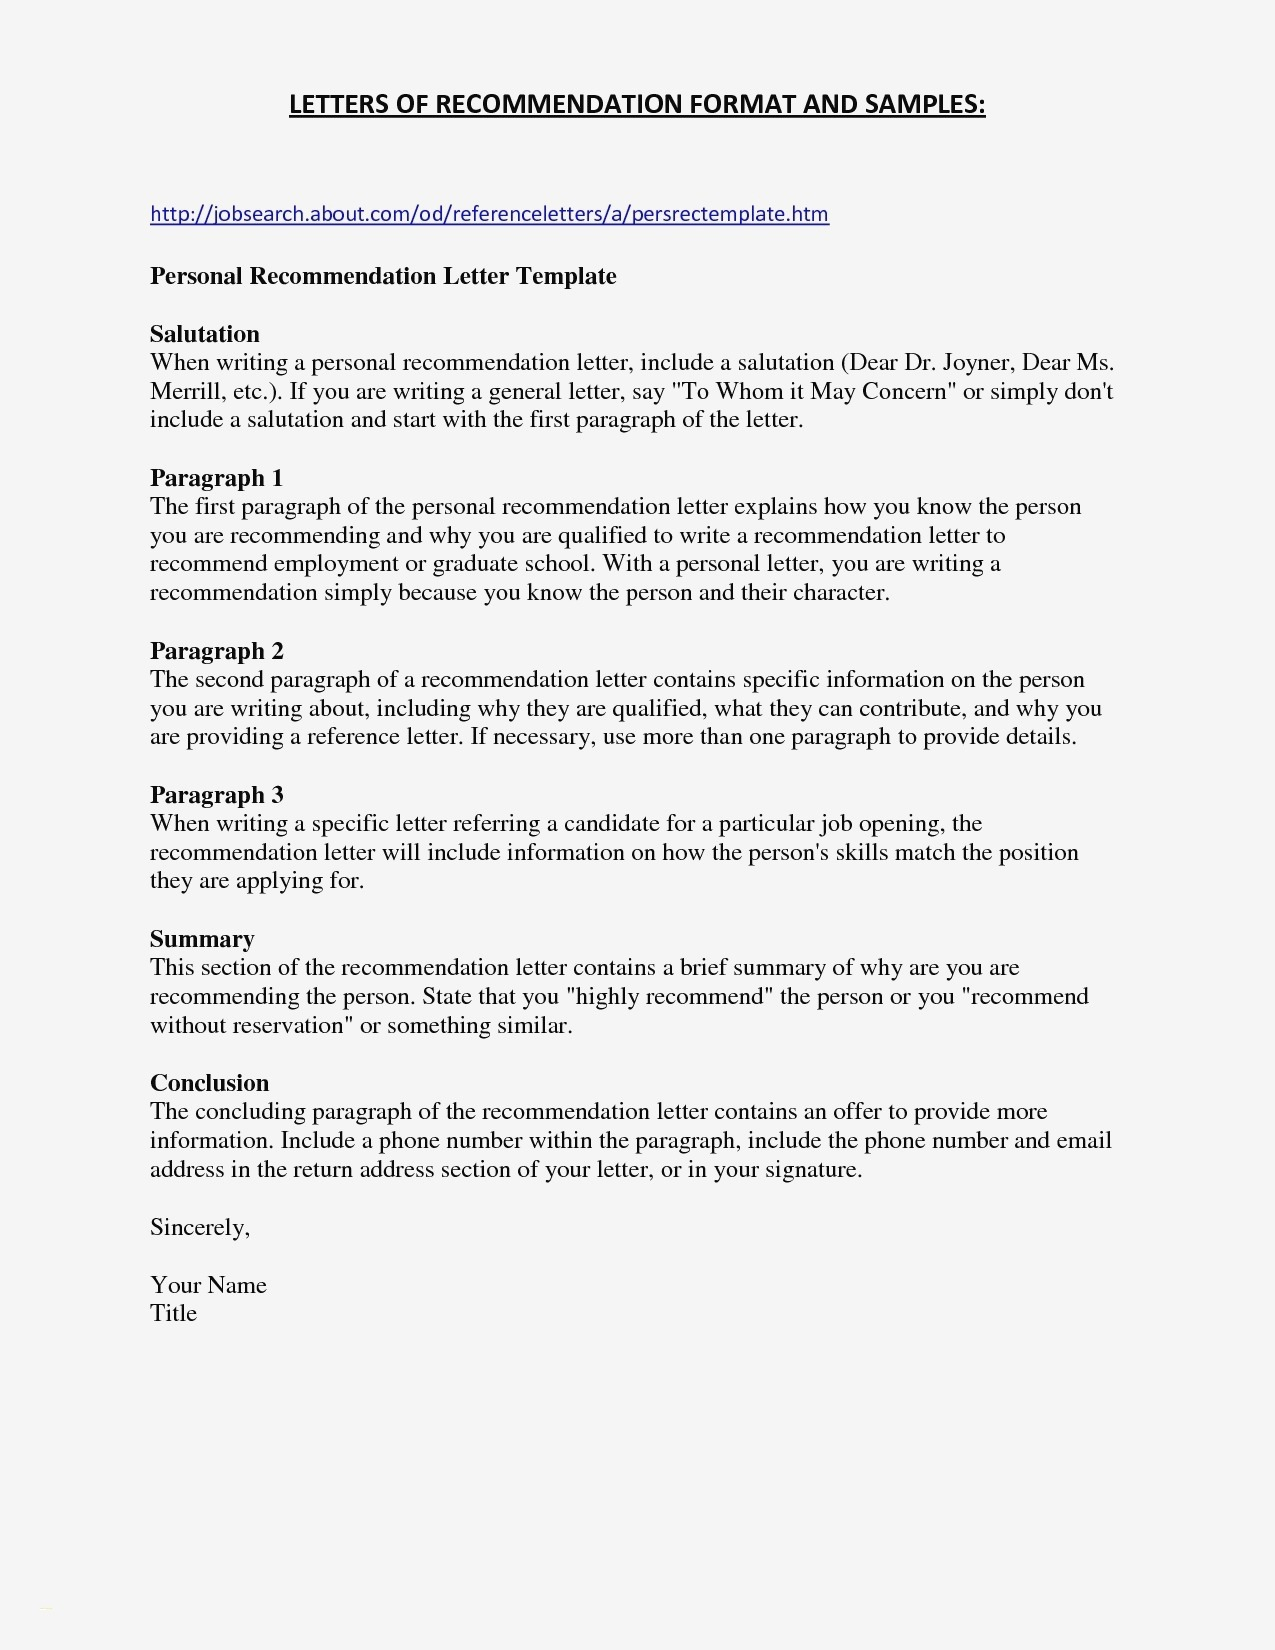 Personal Reference Letter Template Free - Character Resume Template Luxury the Proper Harvard Business School